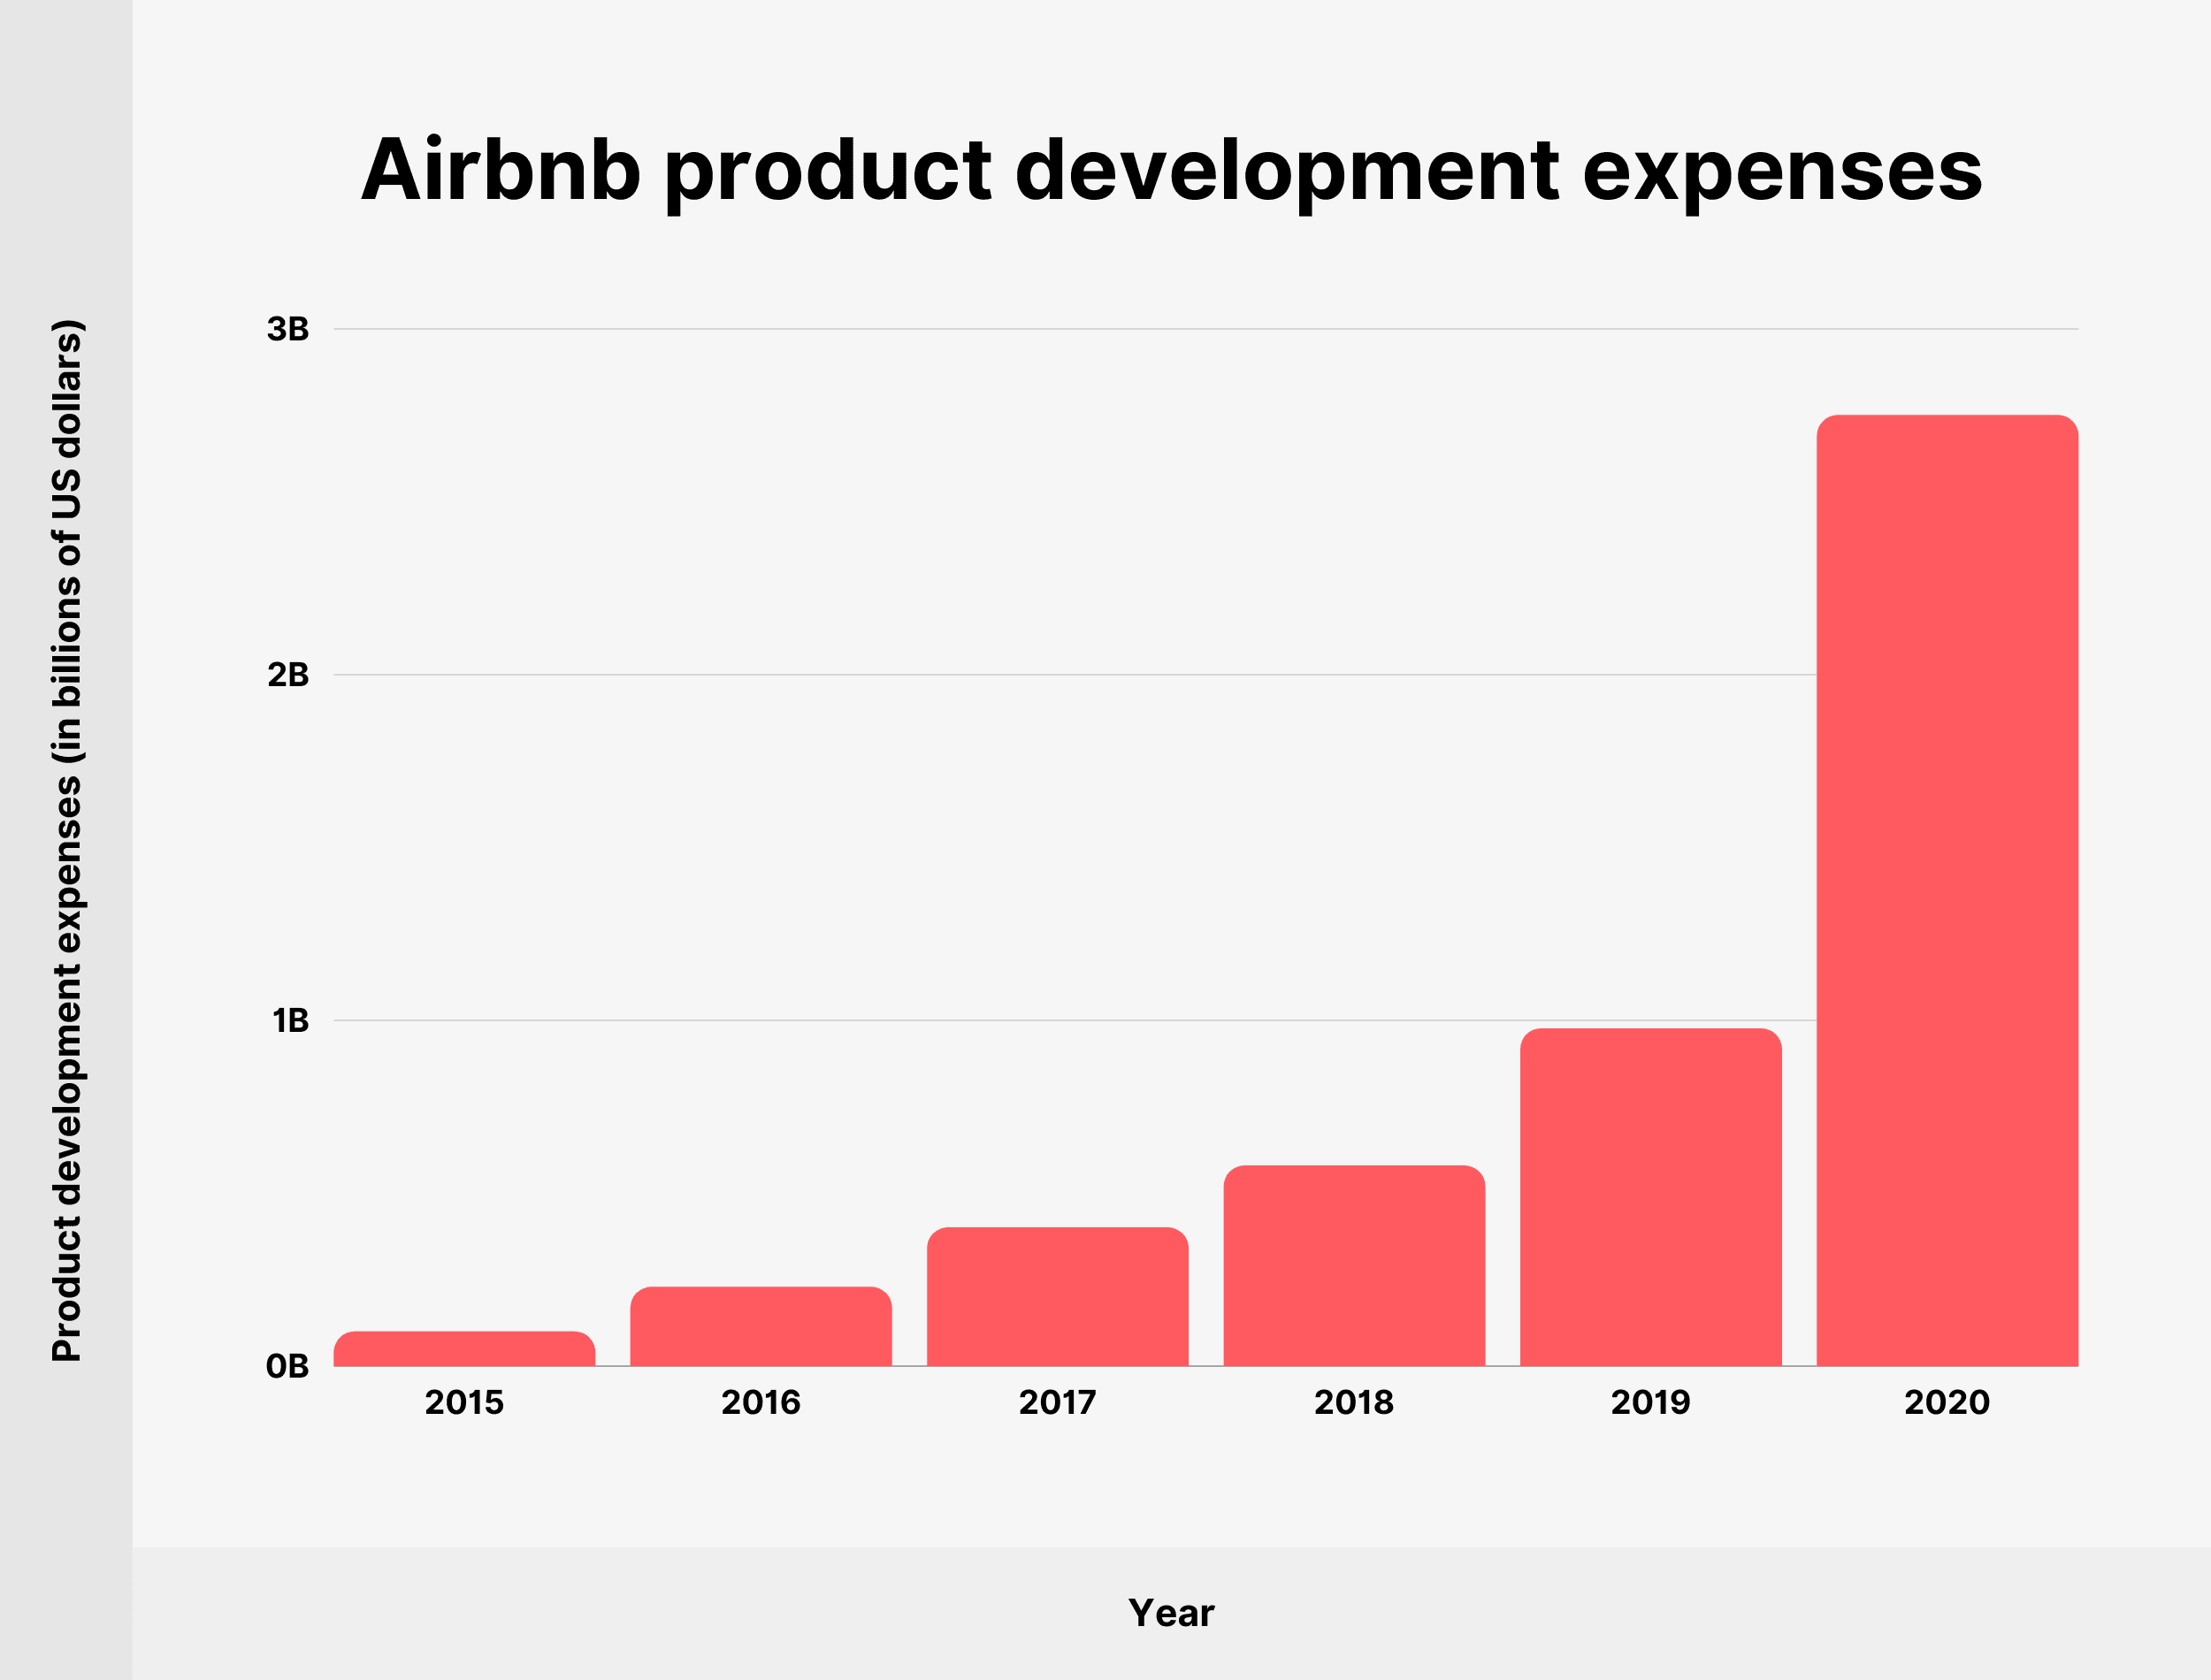 Airbnb product development expenses